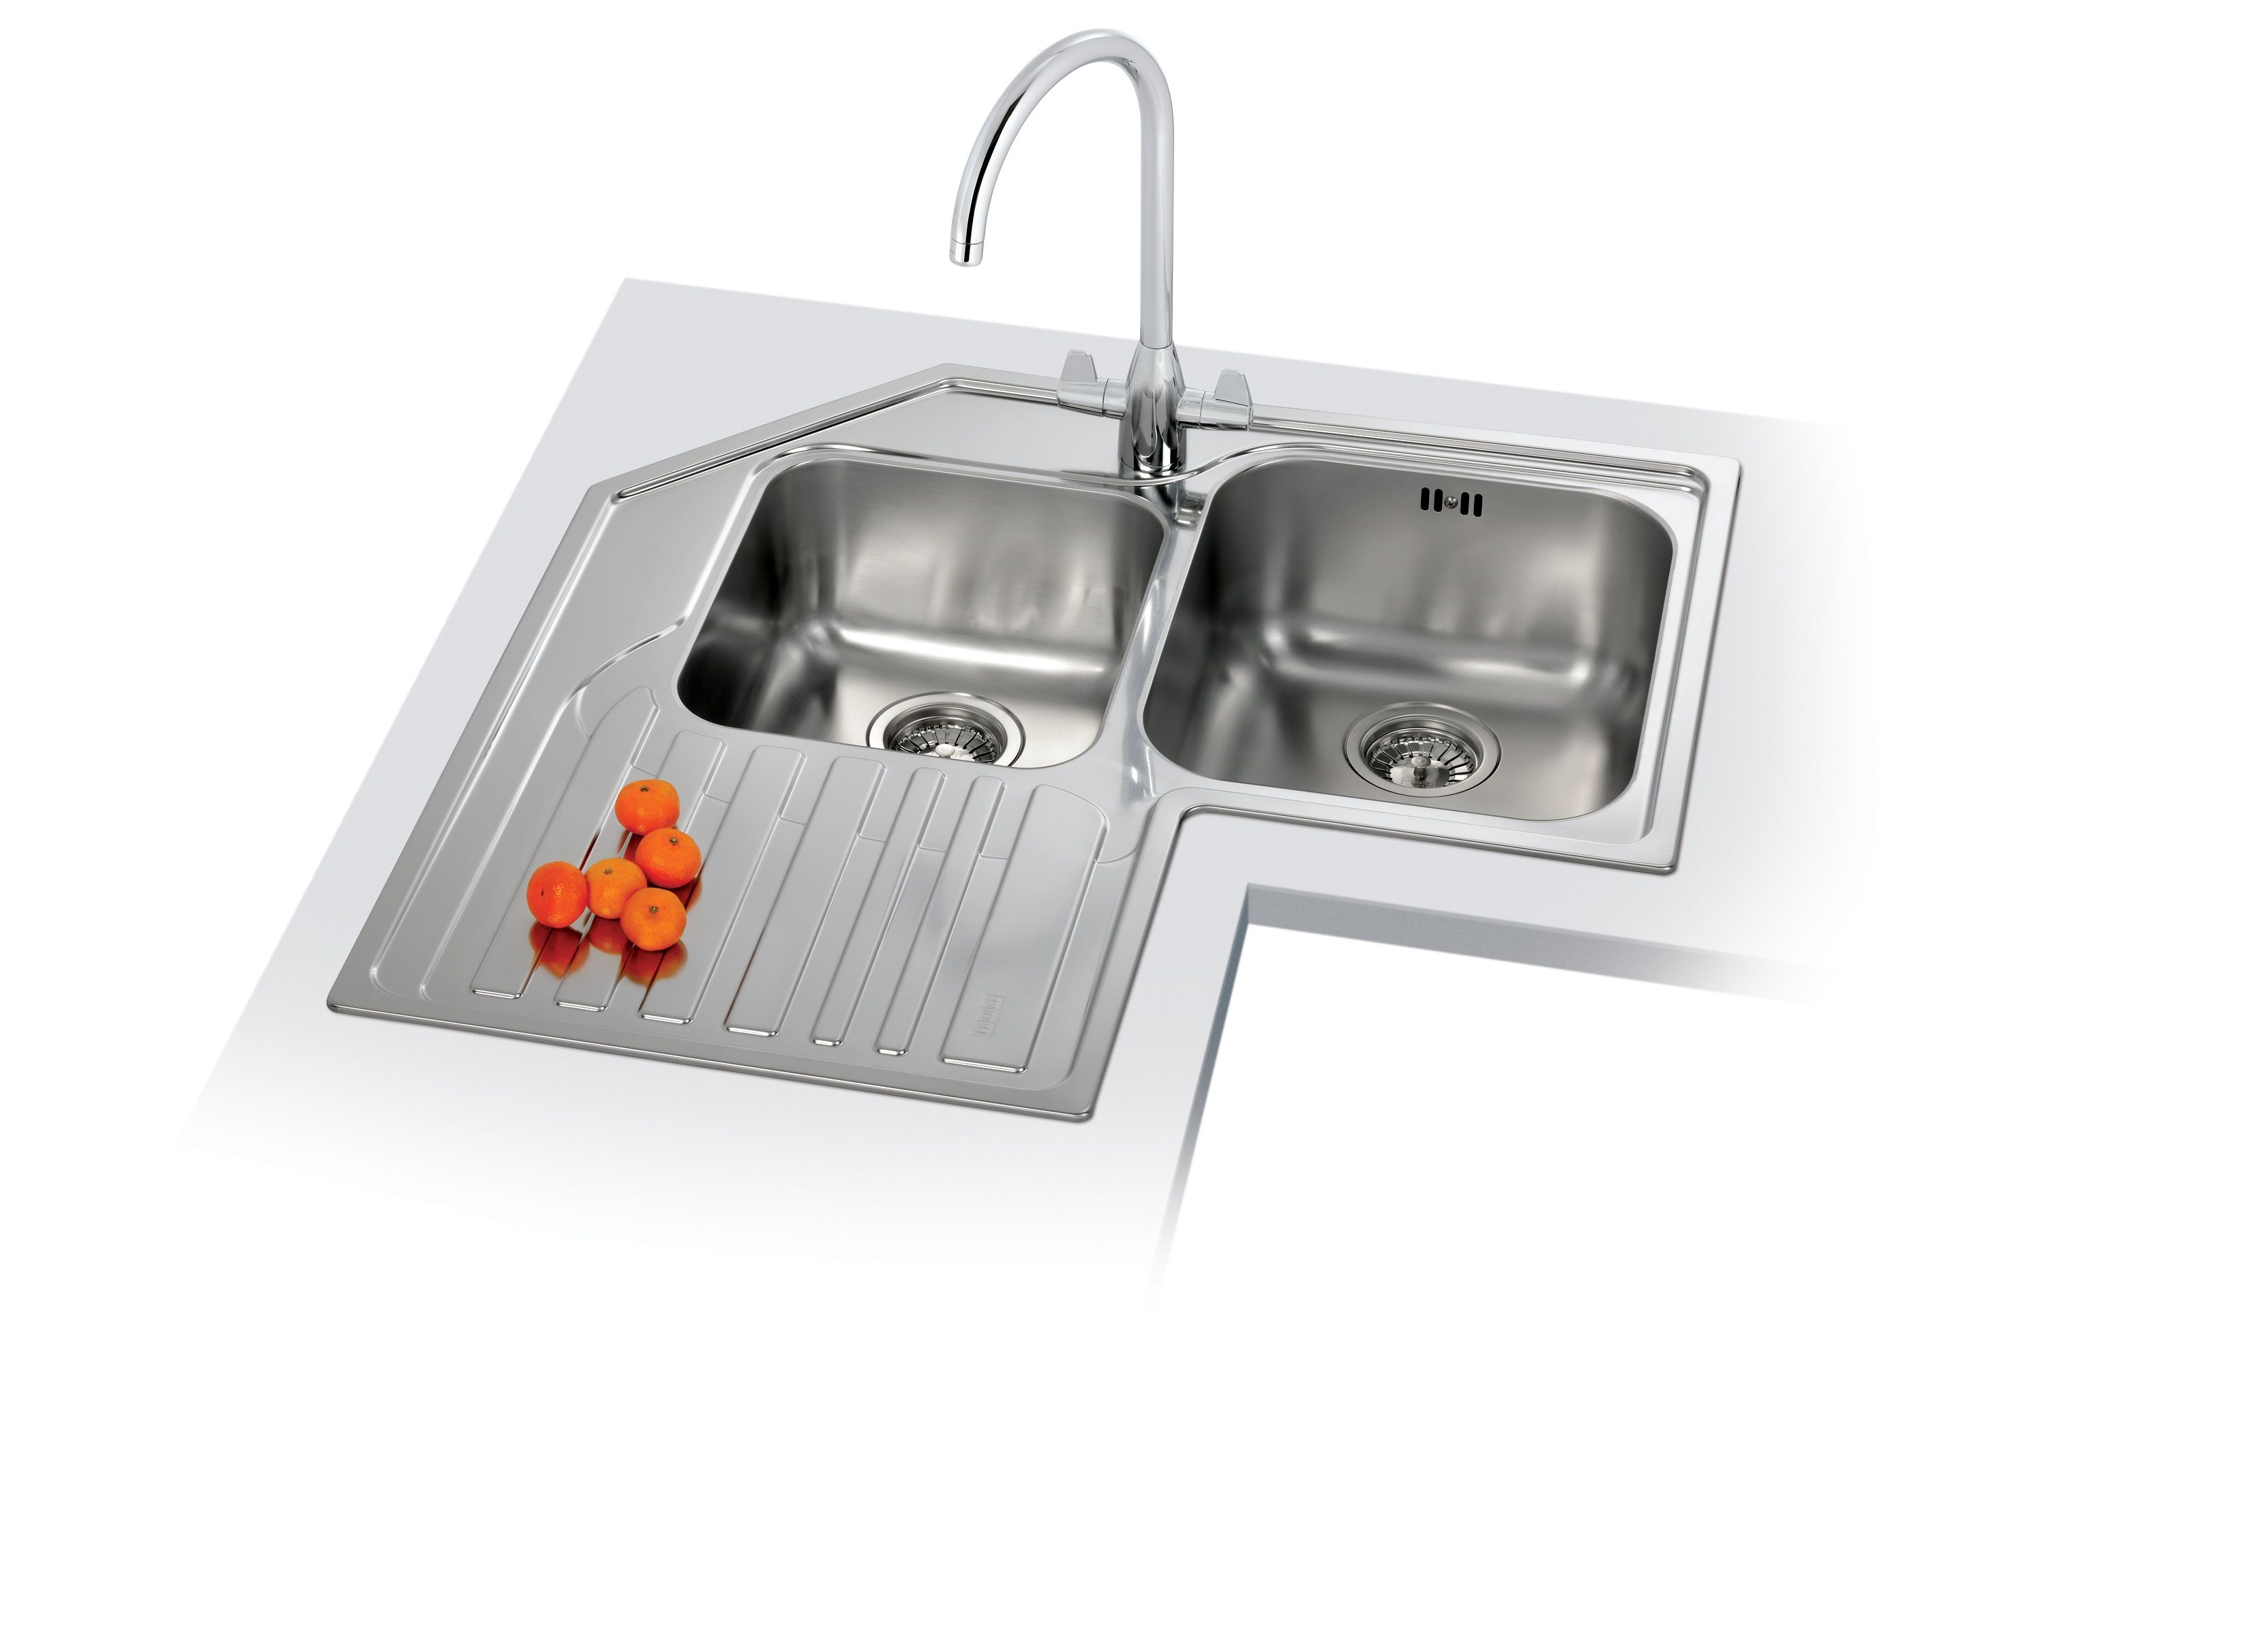 trendy stainless steel double corner kitchen sink with chrome arch faucet design with white background image. Interior Design Ideas. Home Design Ideas